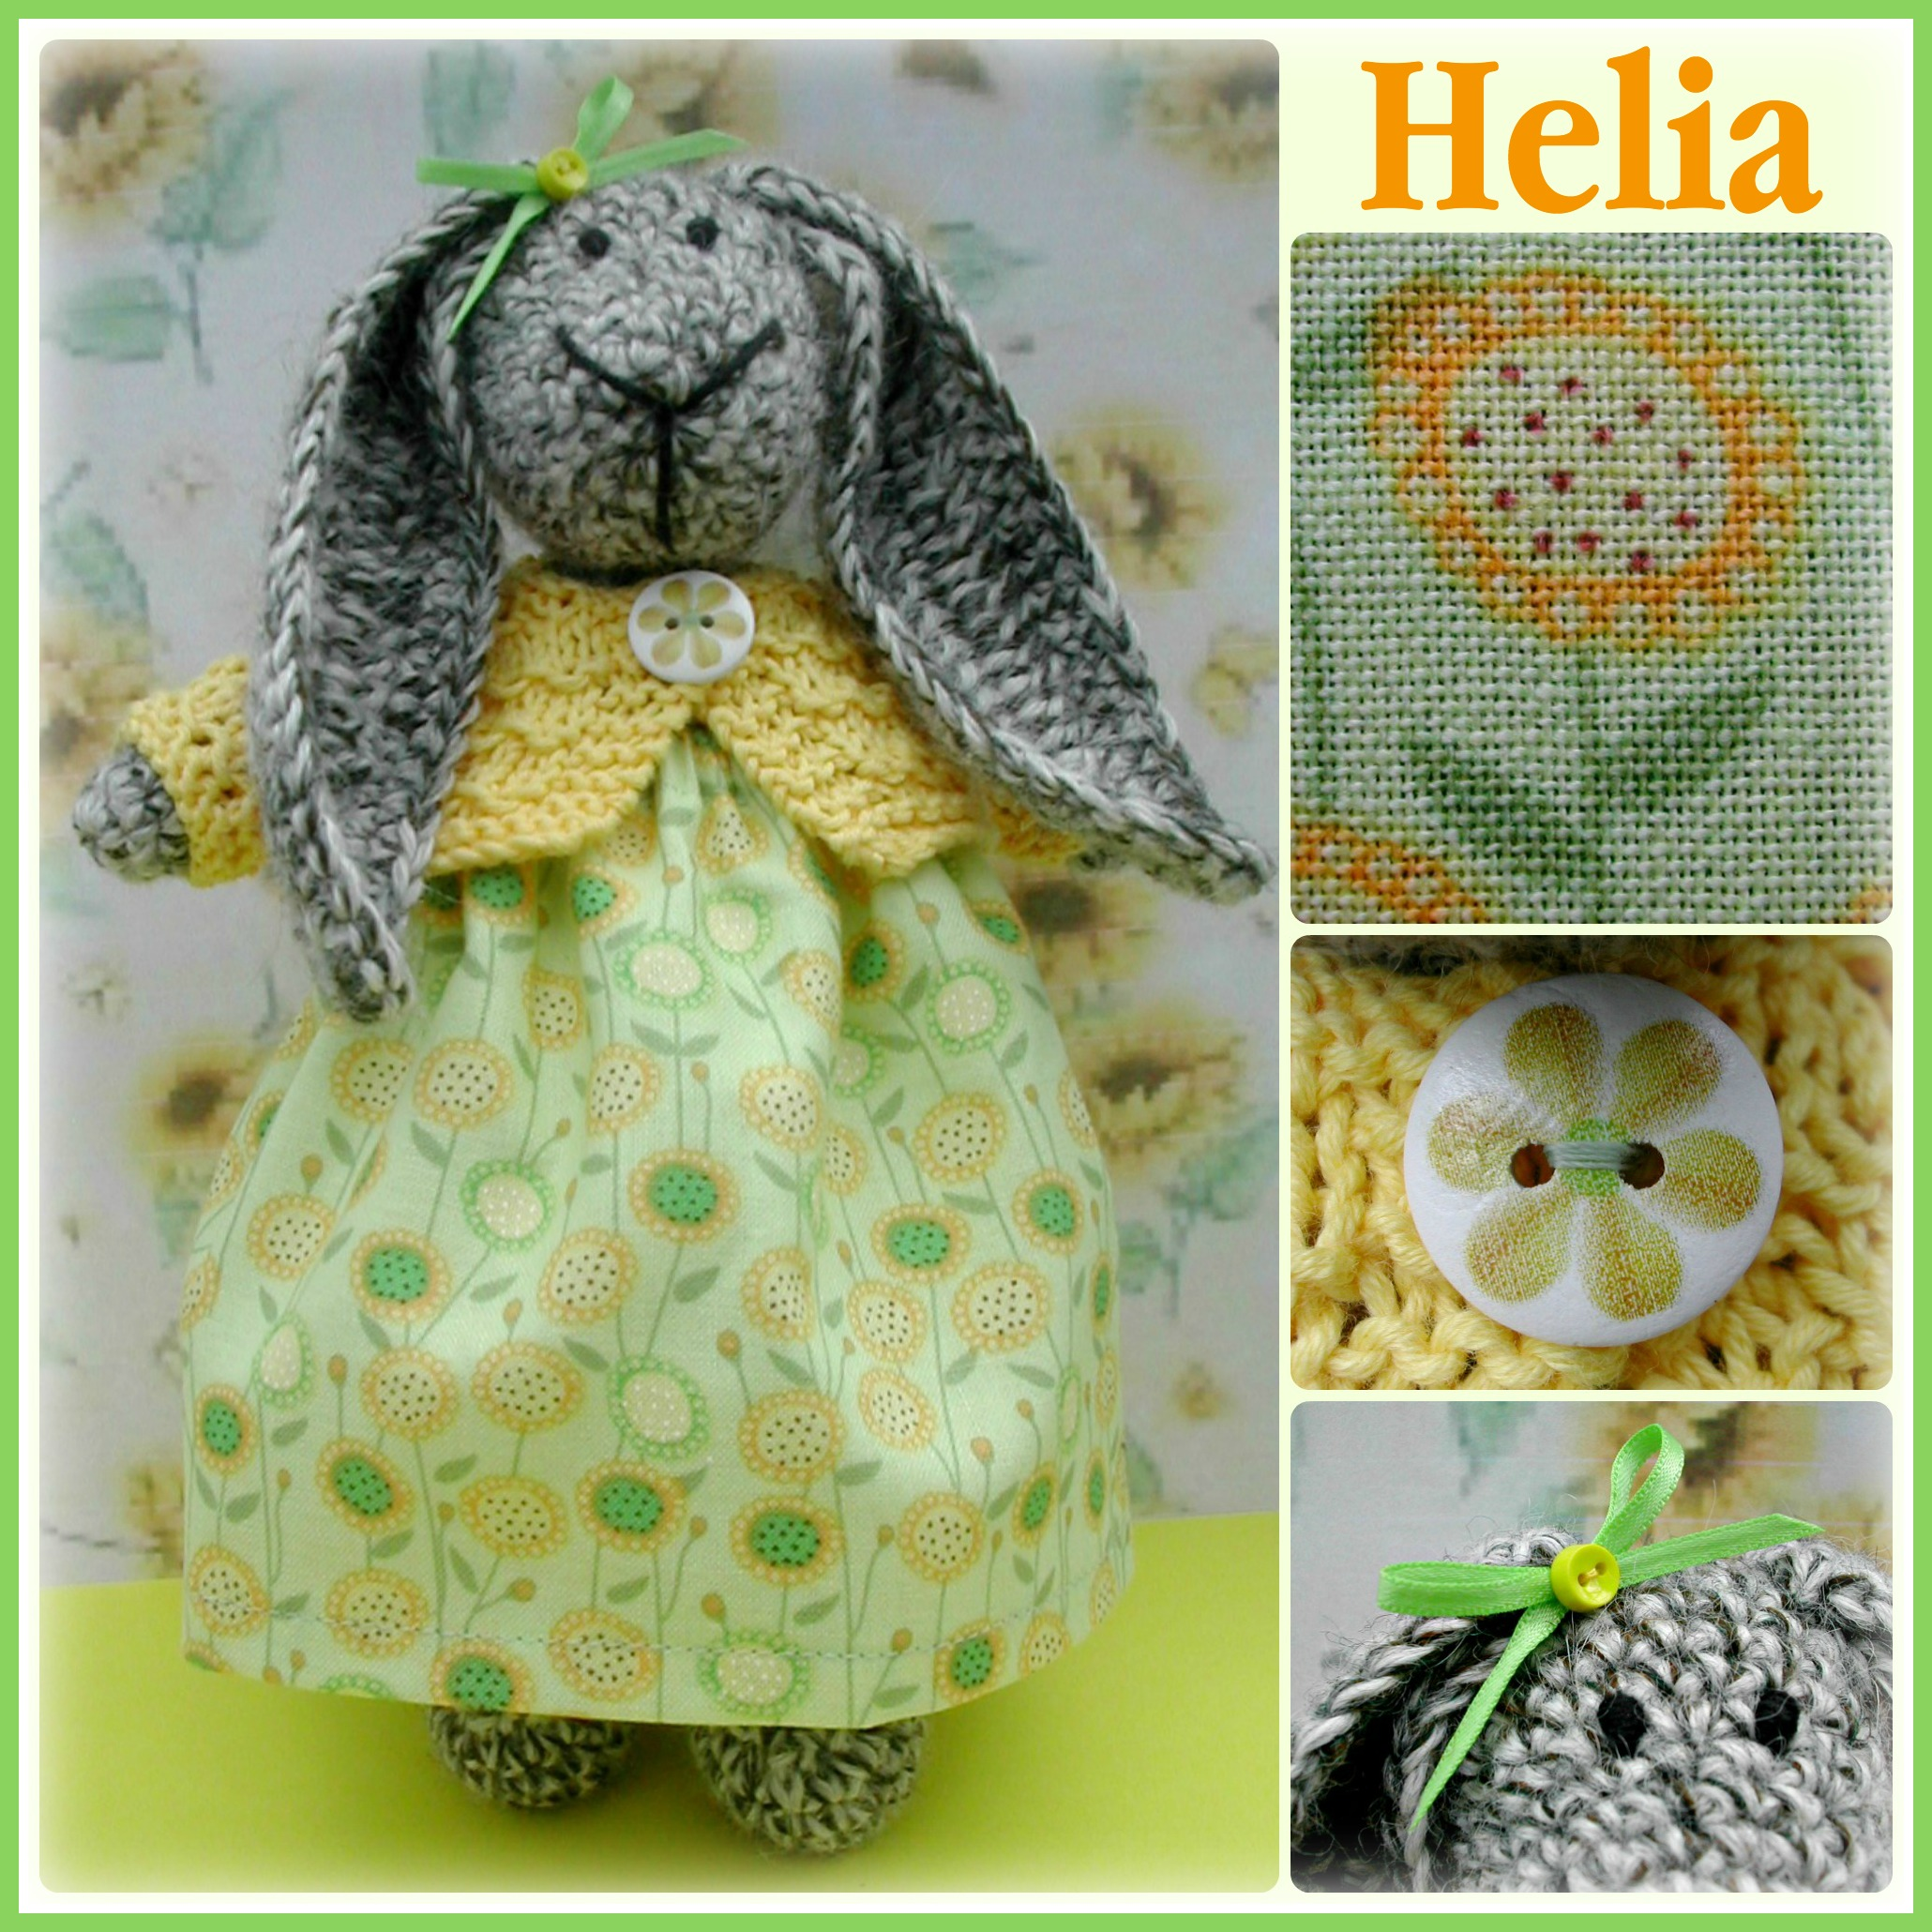 Helia Collage